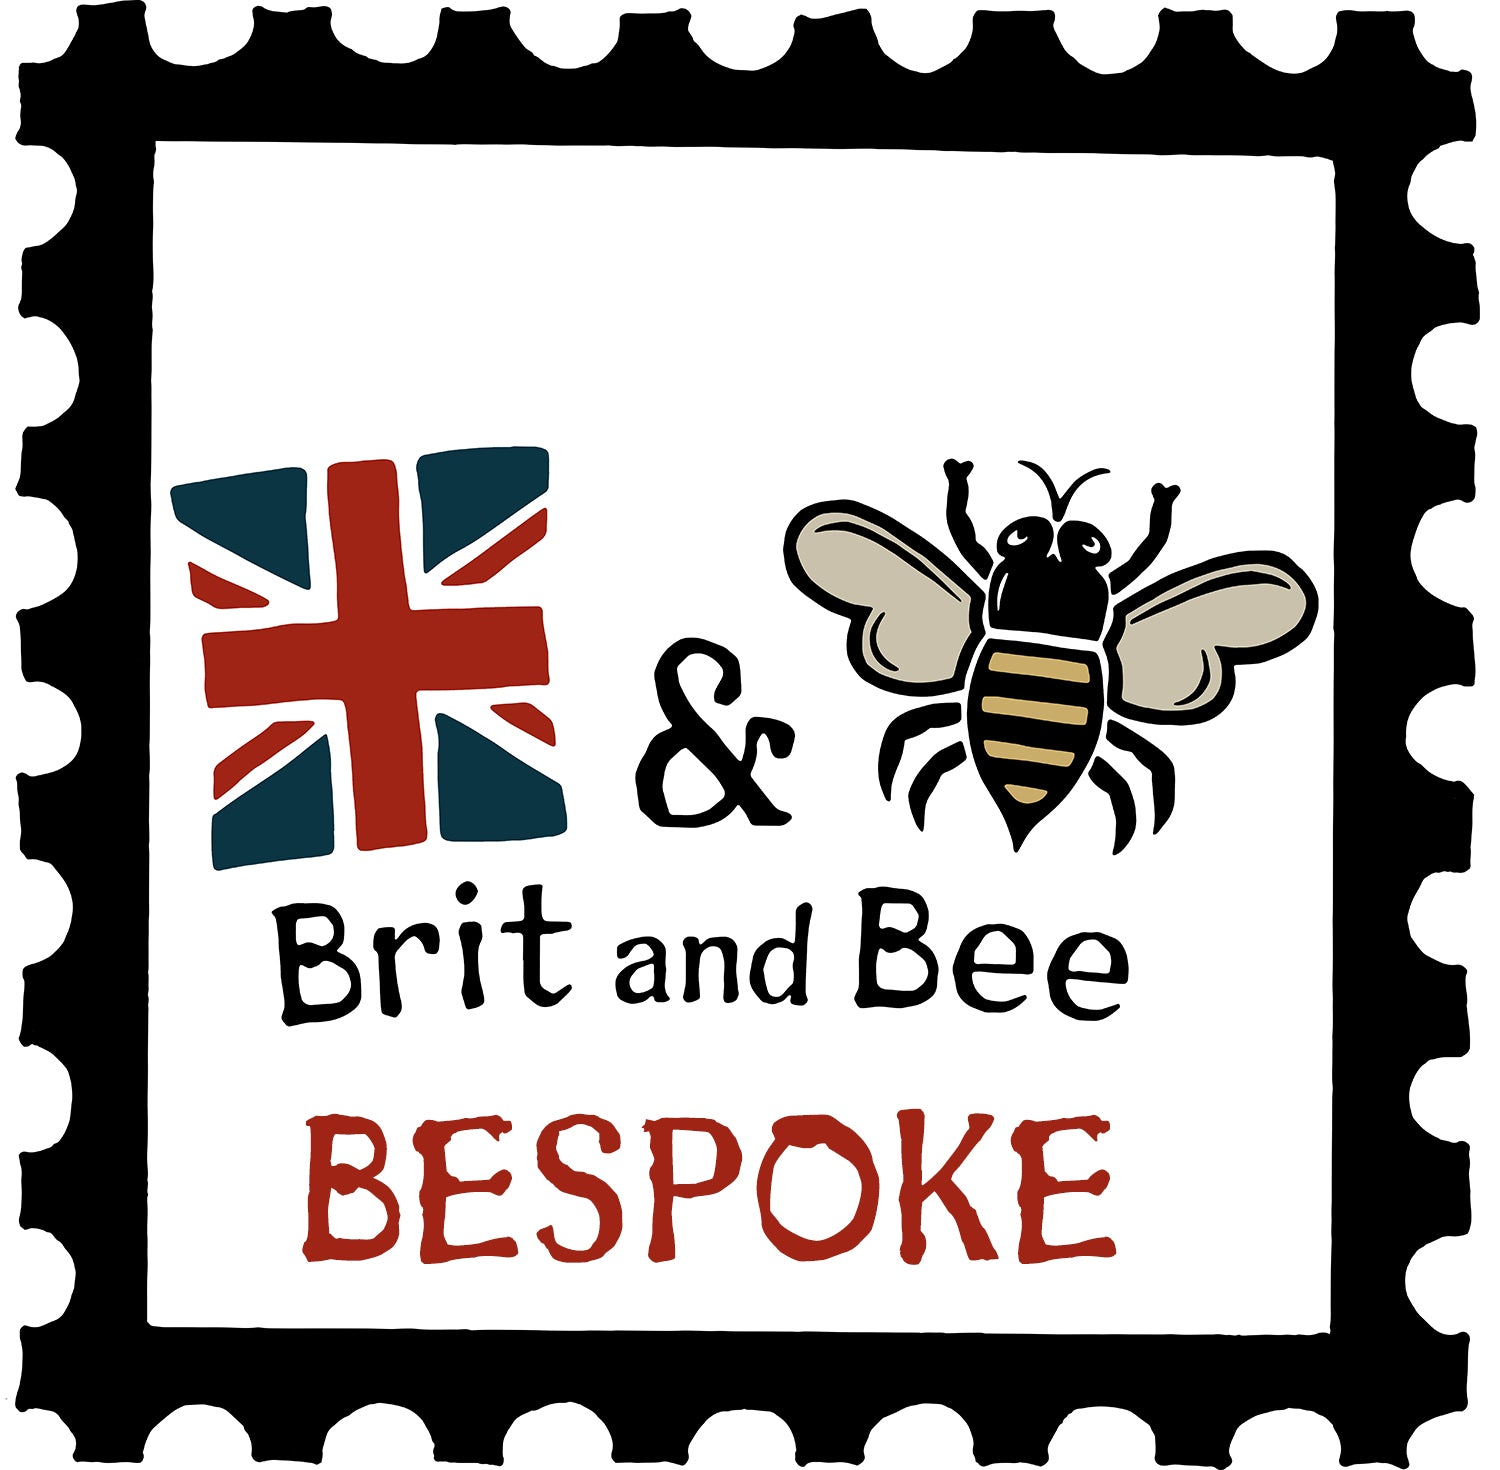 Brit and Bee Bespoke